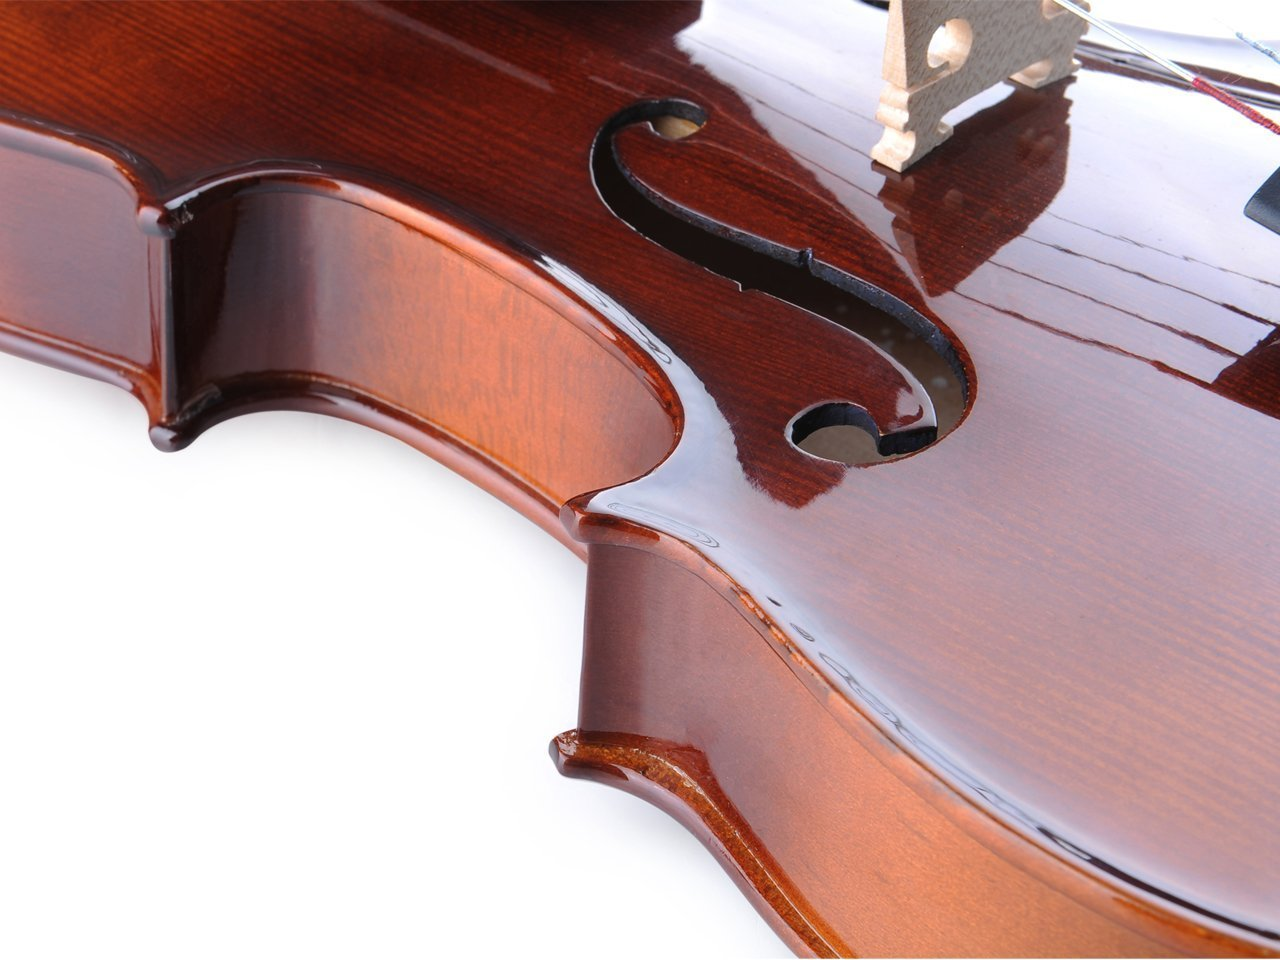 ADM Acoustic Violin 1/2 Size with Hard Case, Beginner Pack for Student, Red Brown by ADM (Image #6)